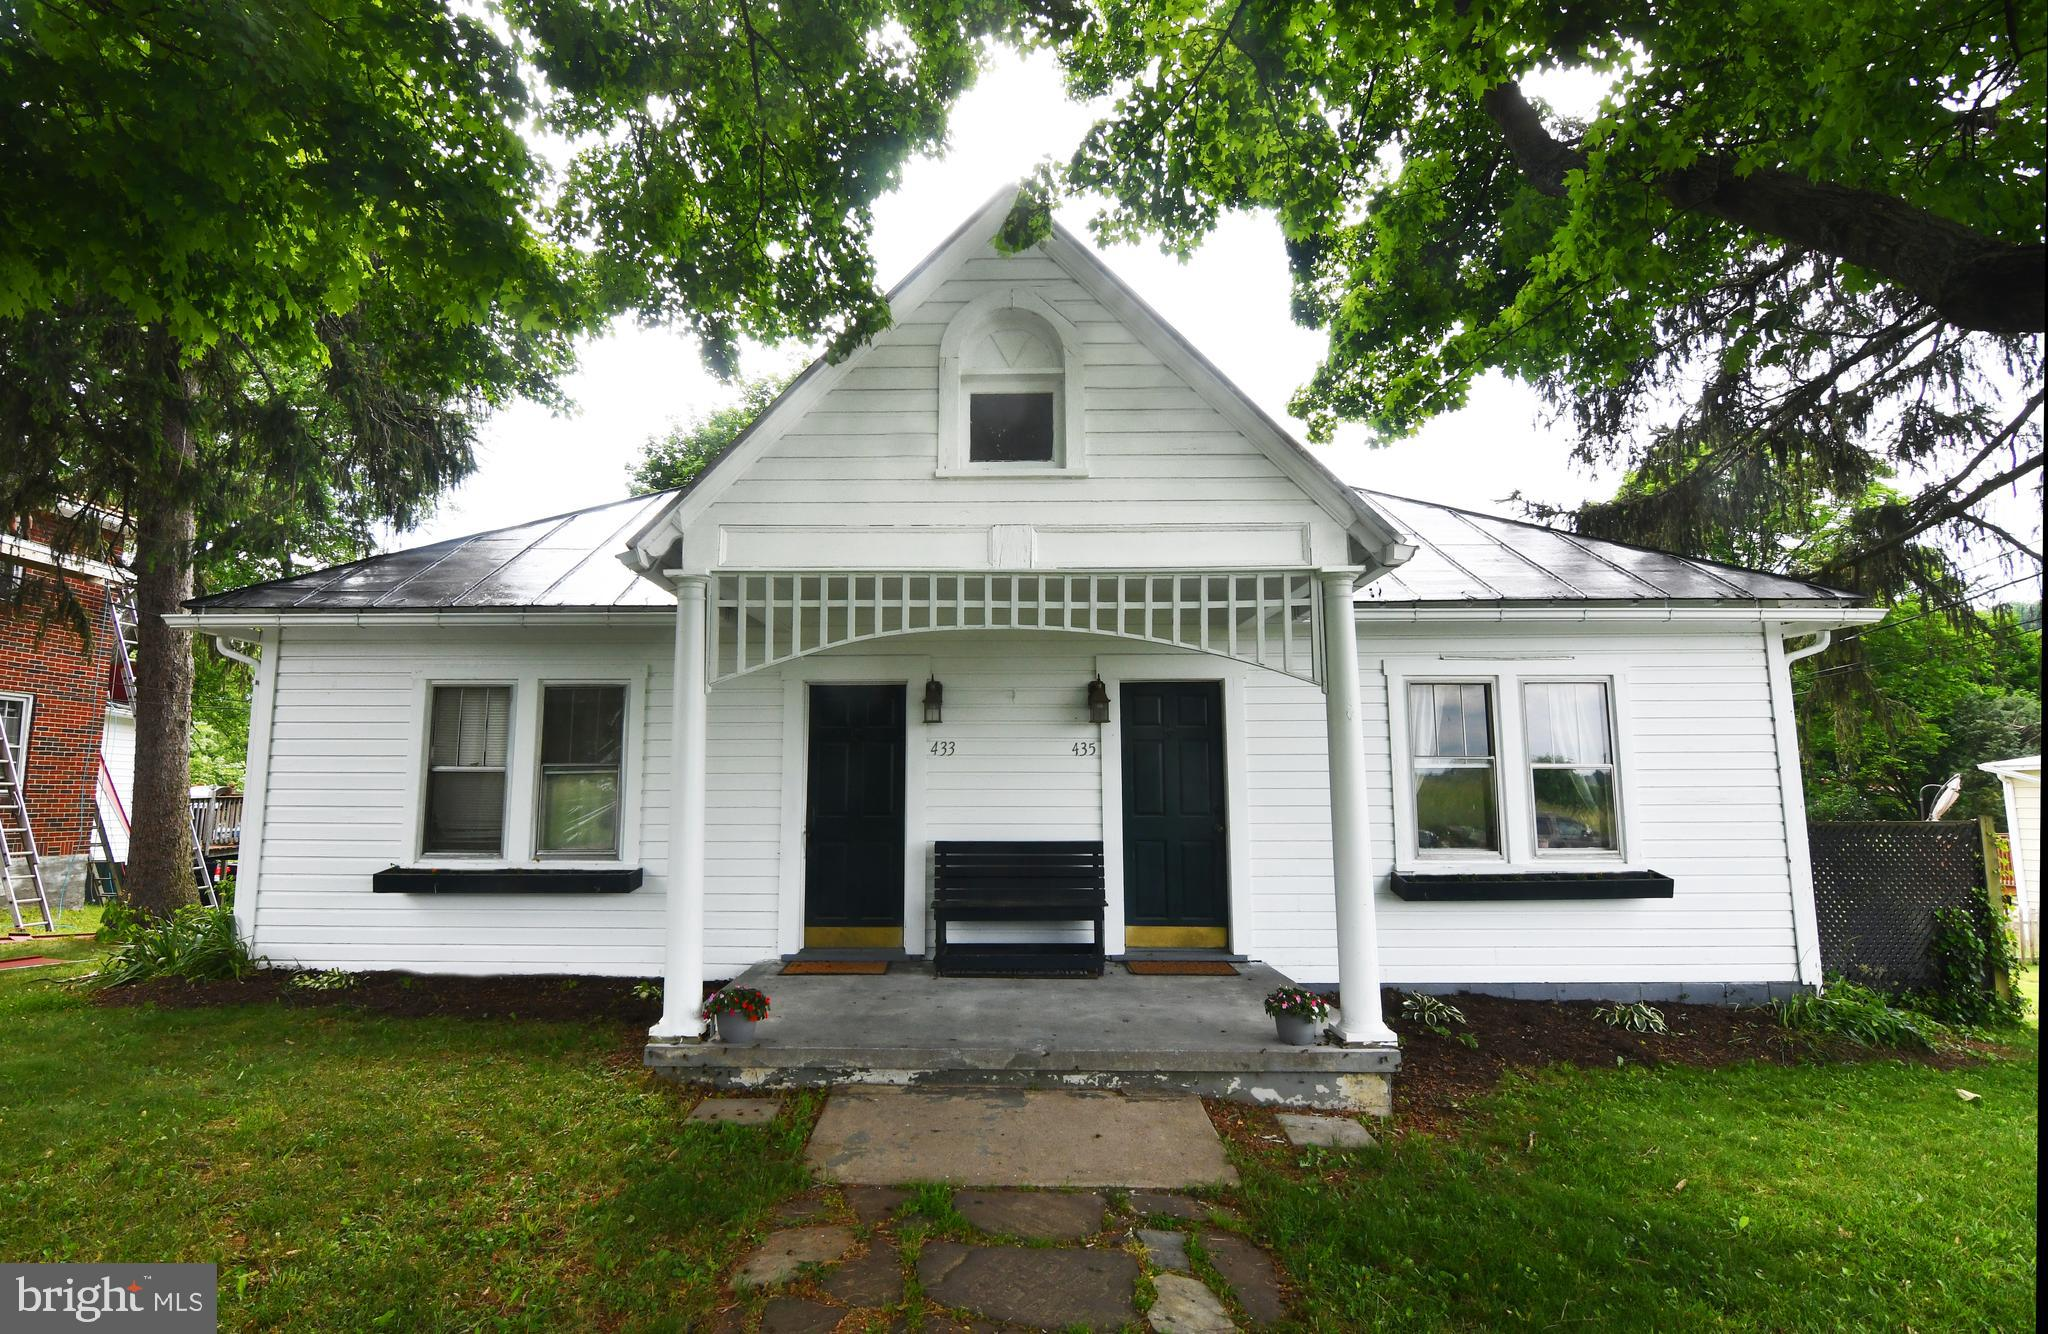 INVEST IN A MONEY-MAKER! Potential gross income of $22,200 per year. Near town and convenient to Win